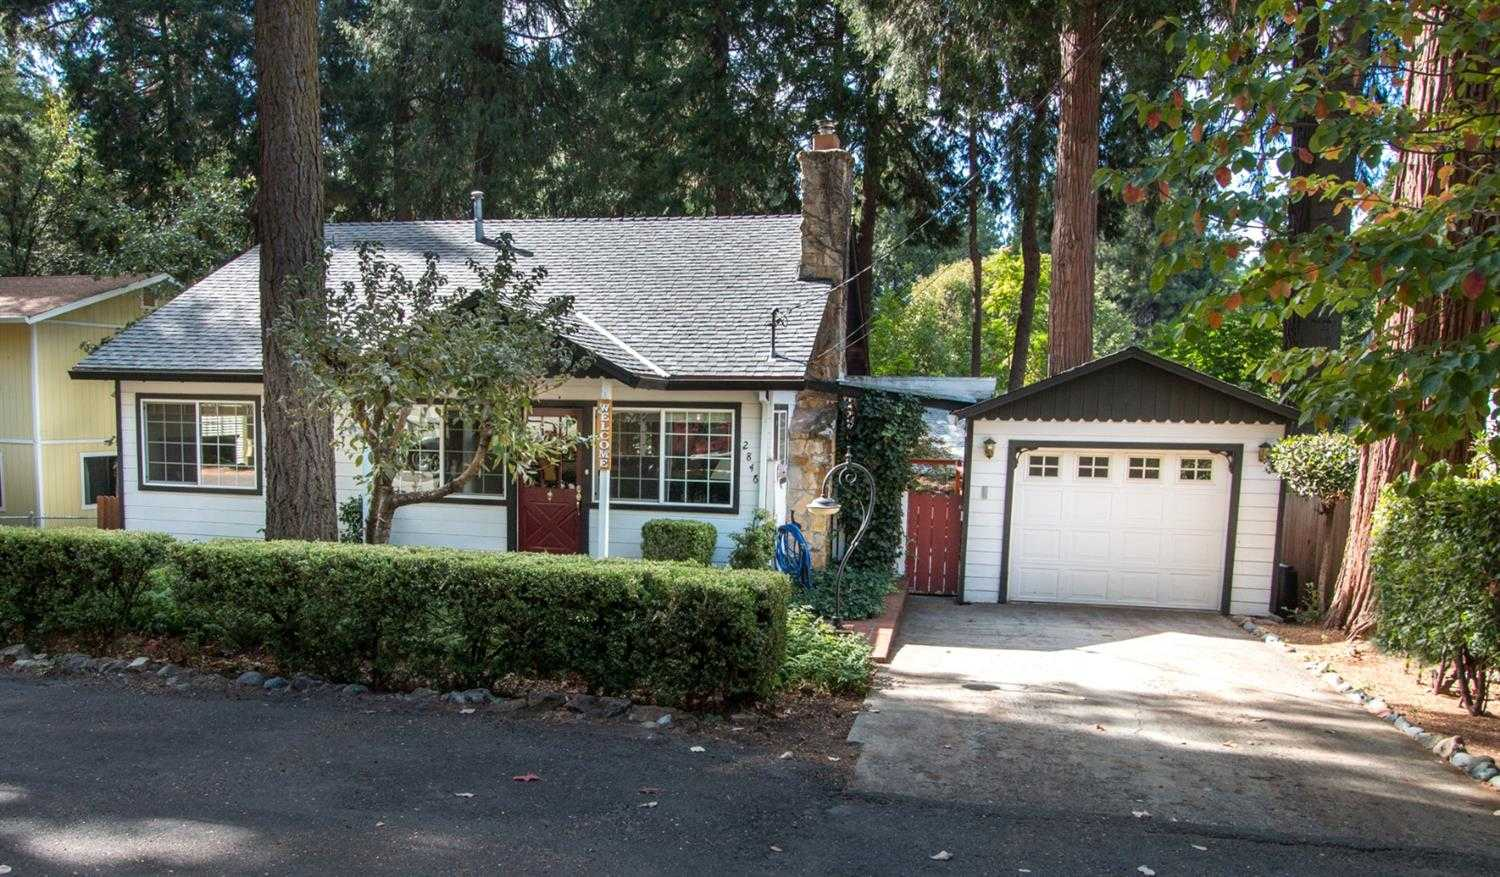 $312,500 - 3Br/3Ba -  for Sale in Pollock Pines